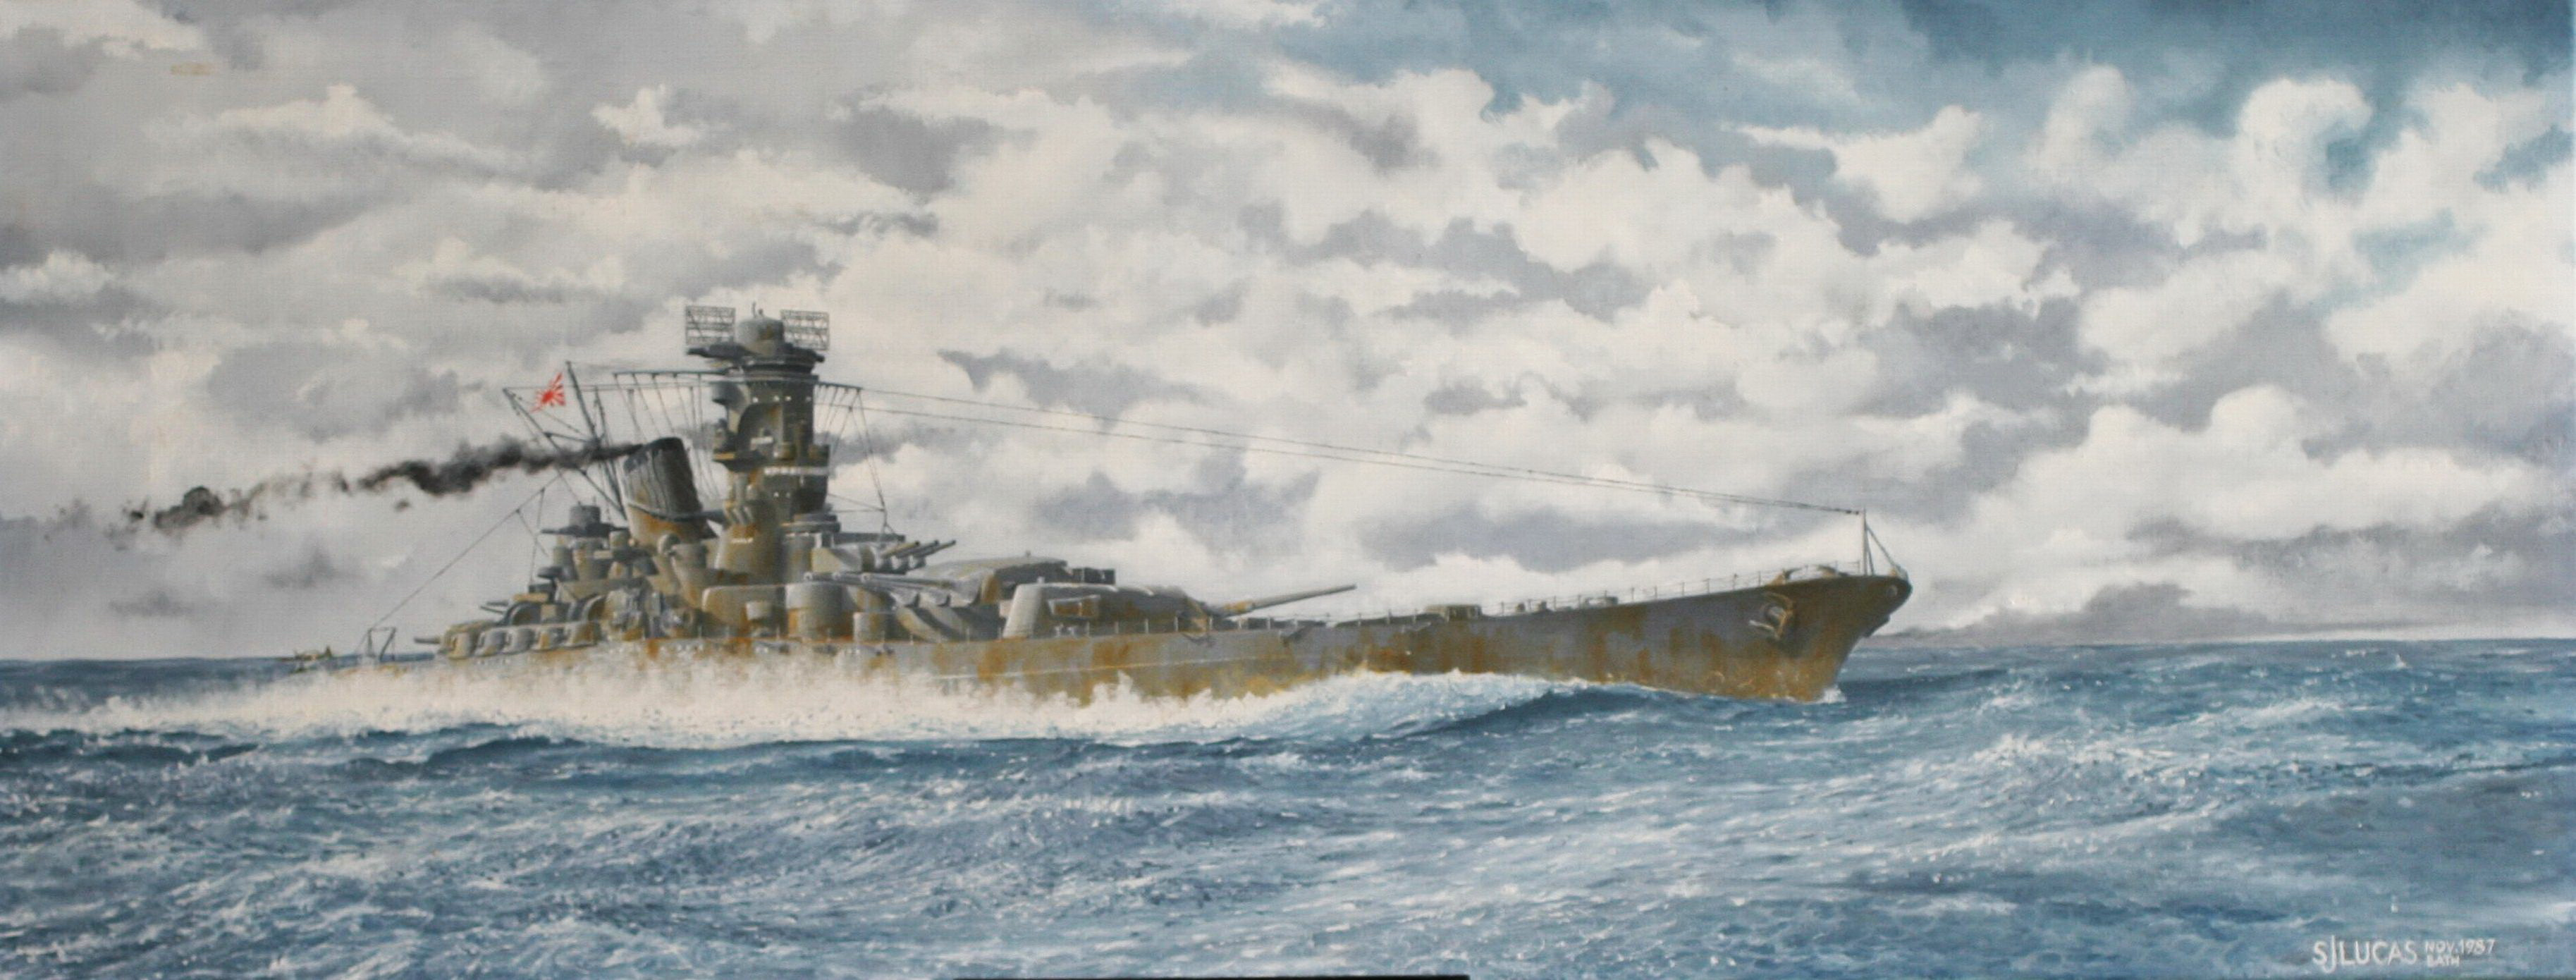 yamato named after the ancient japanese yamato province was the lead 3654x1390